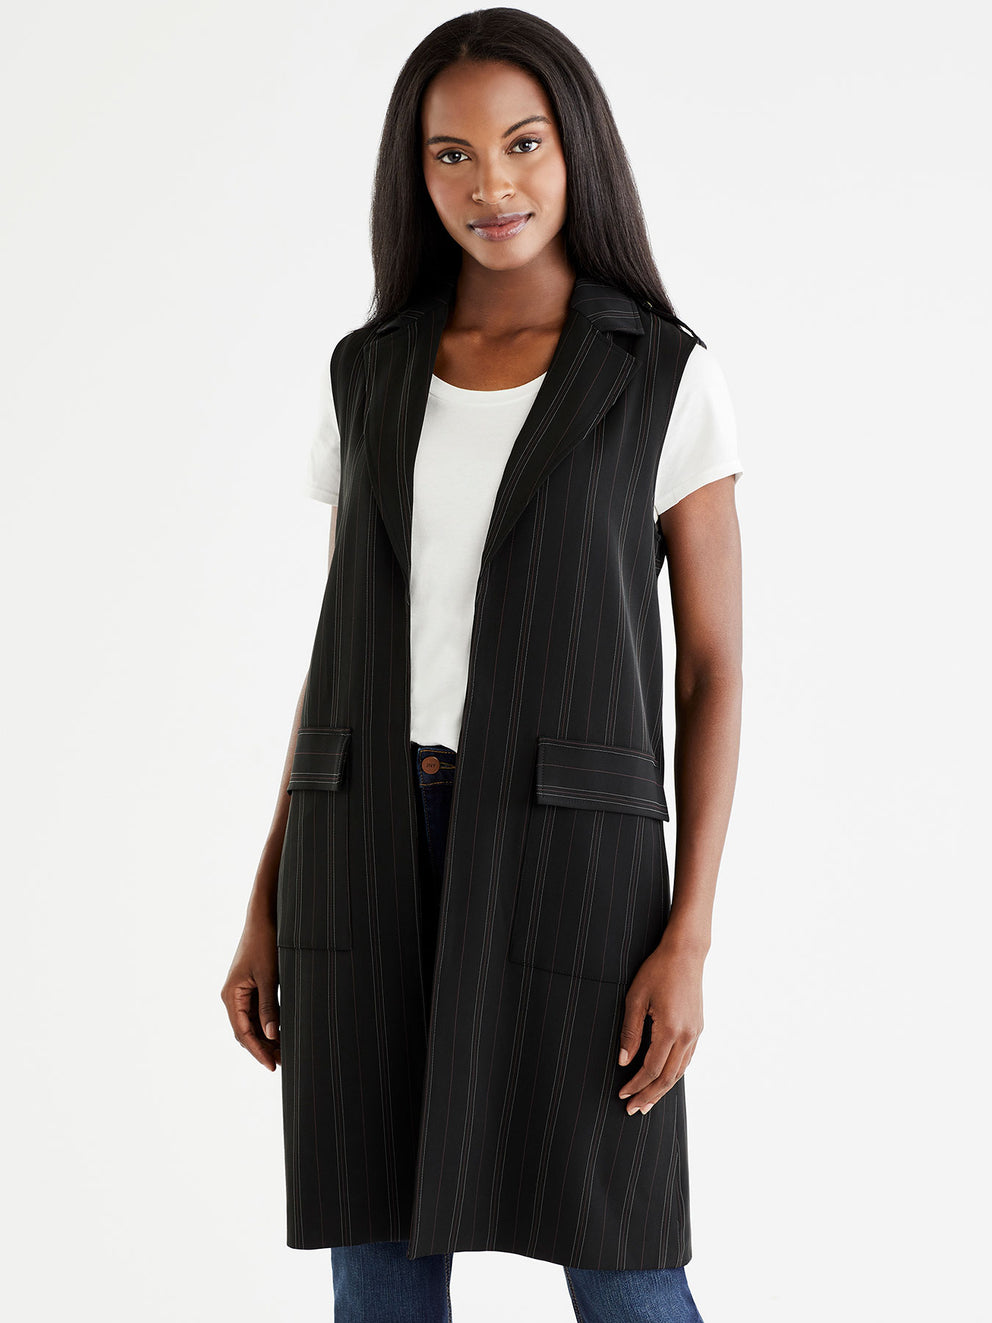 The Jones New York Pinstripe Long Vest in color Black Euro Stripe - Image Position 1